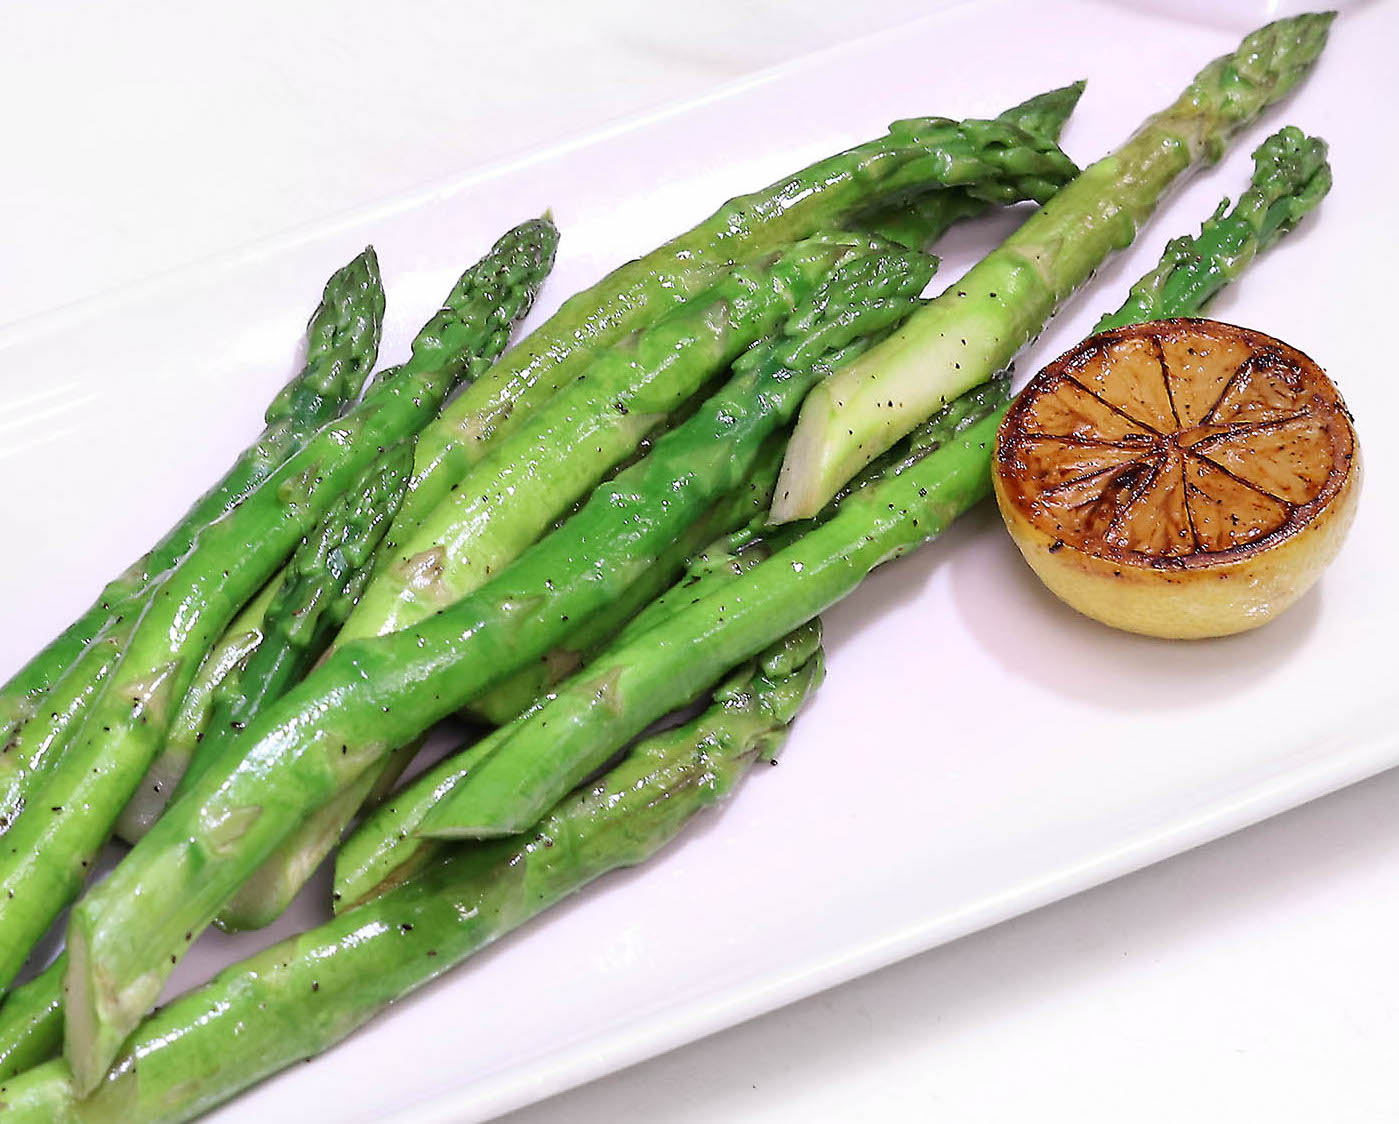 picture of Asparagus side item garnished with a lemon.